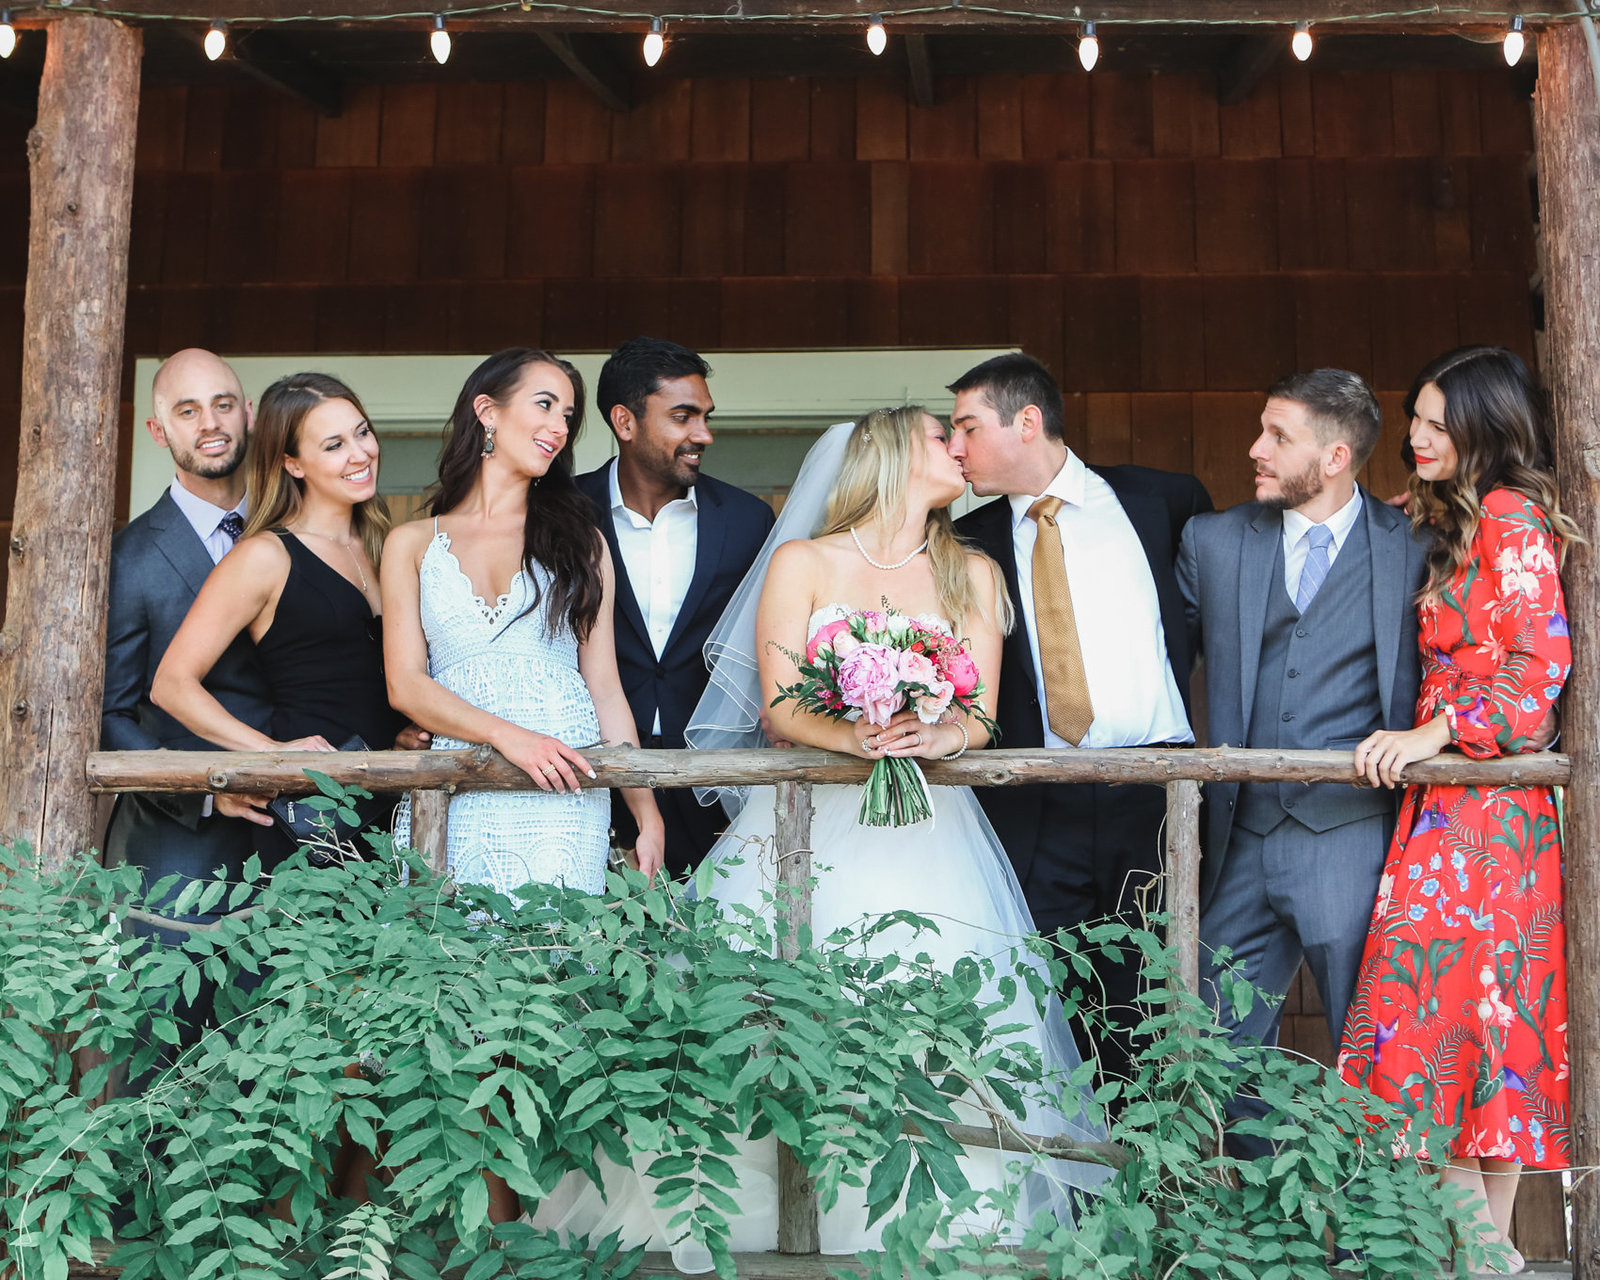 In beautiful rustic los altos wedding, the bride and groom pose with their familt